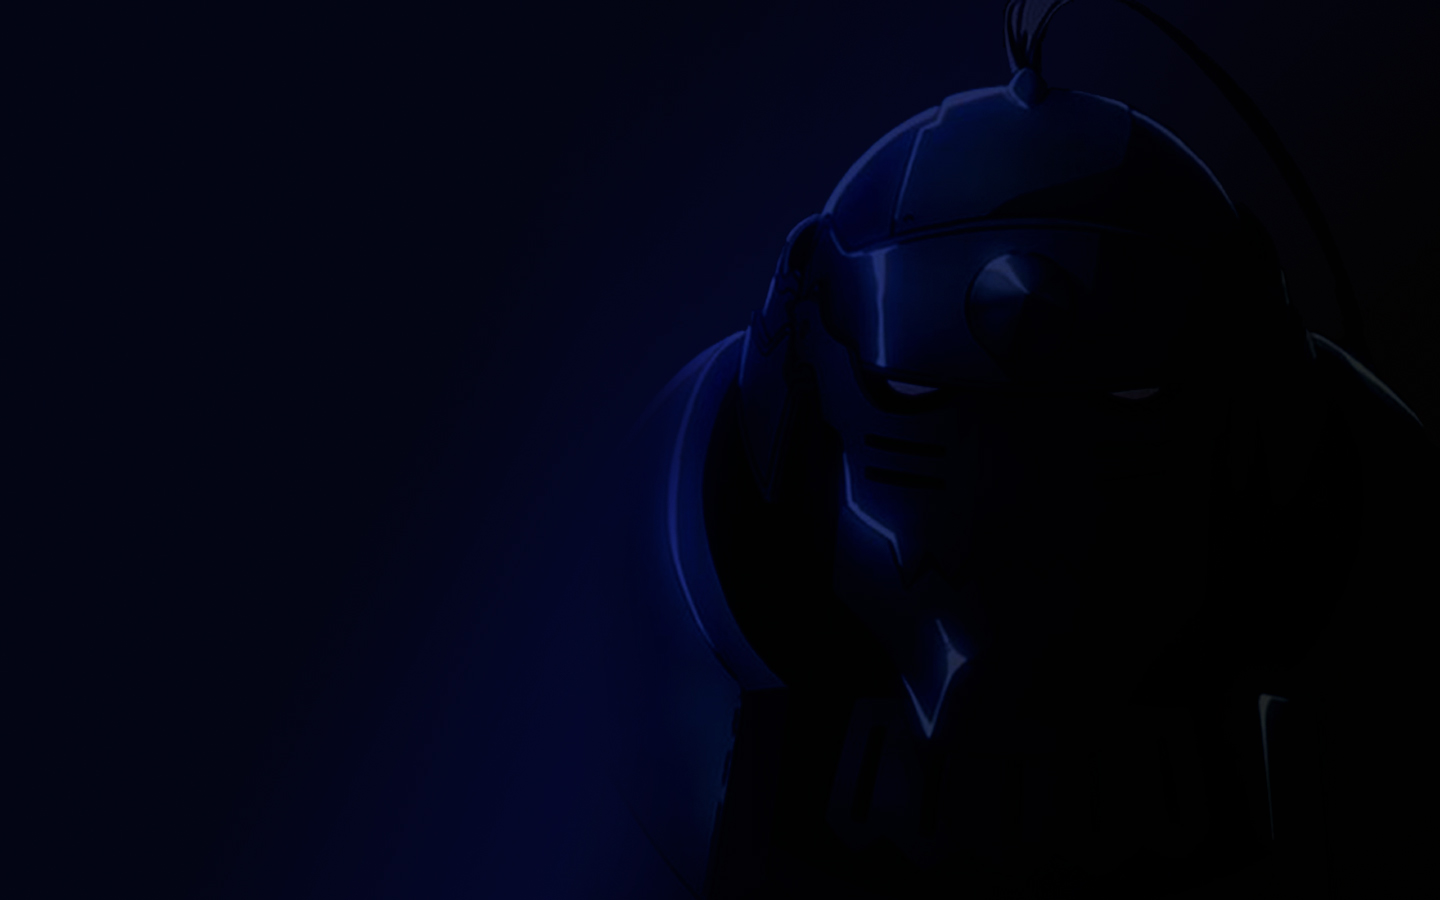 alphonse elric simplified wallpaper - photo #23